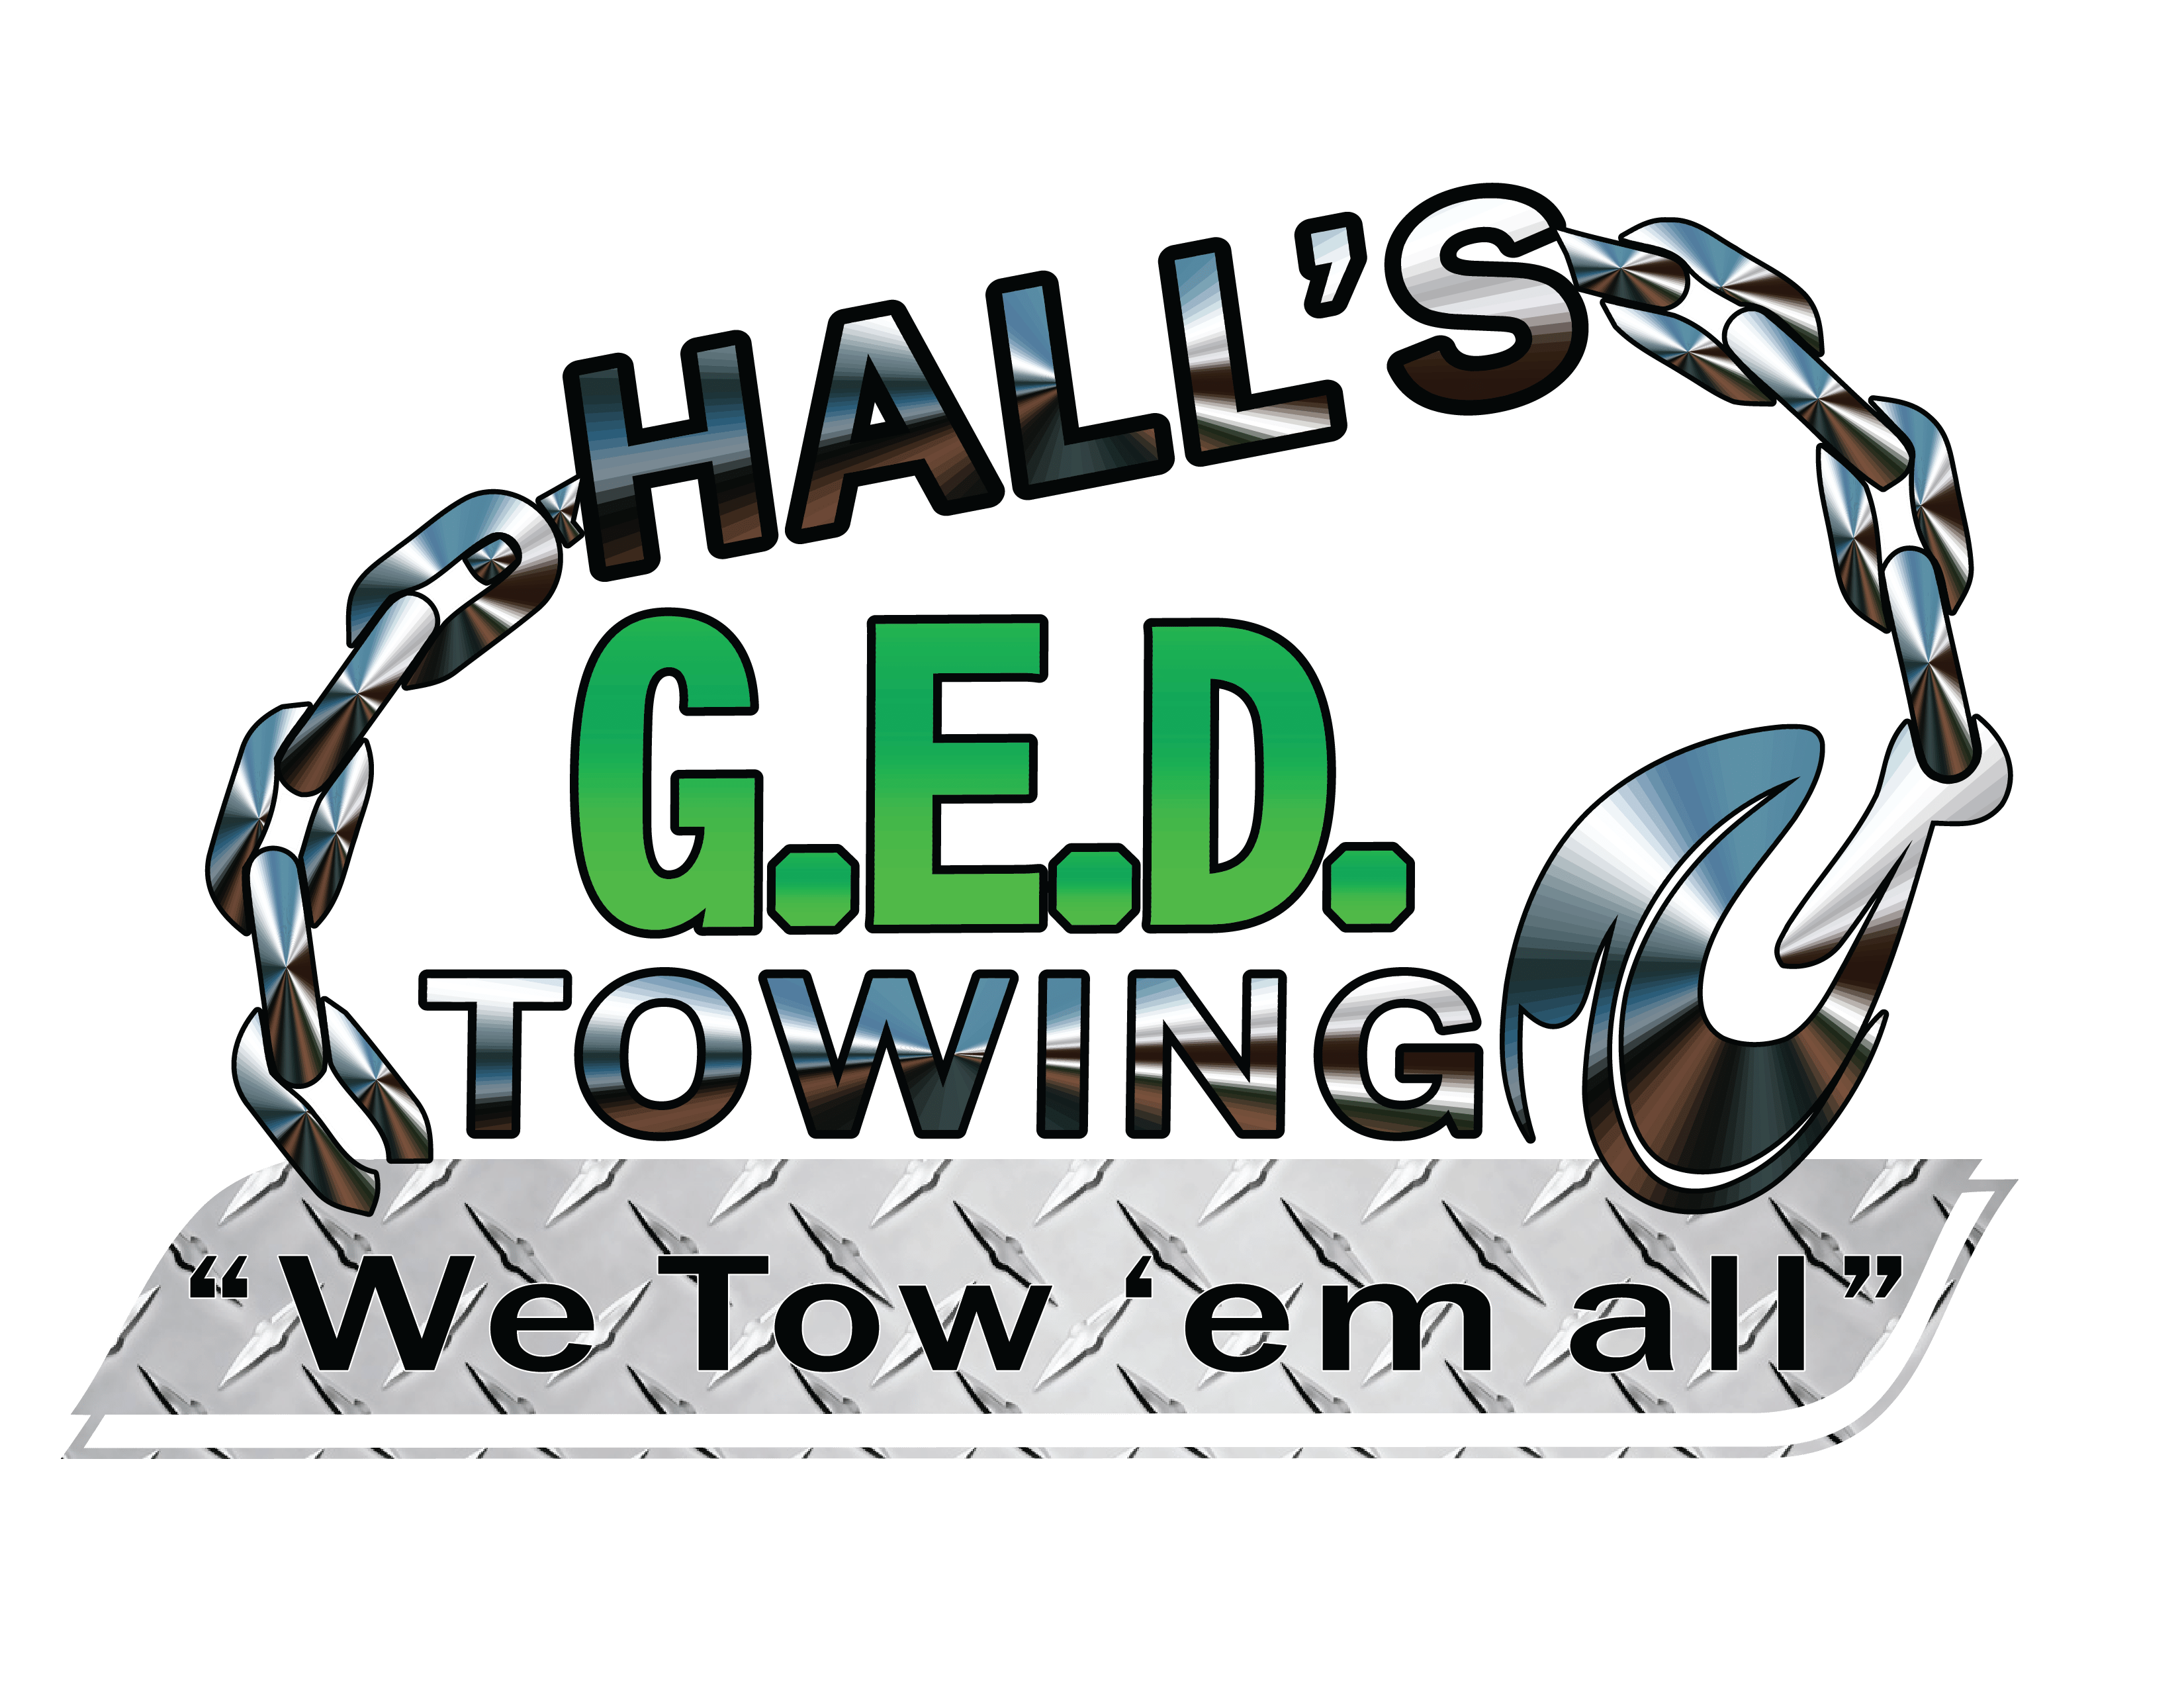 Hall's G.E.D. Towing